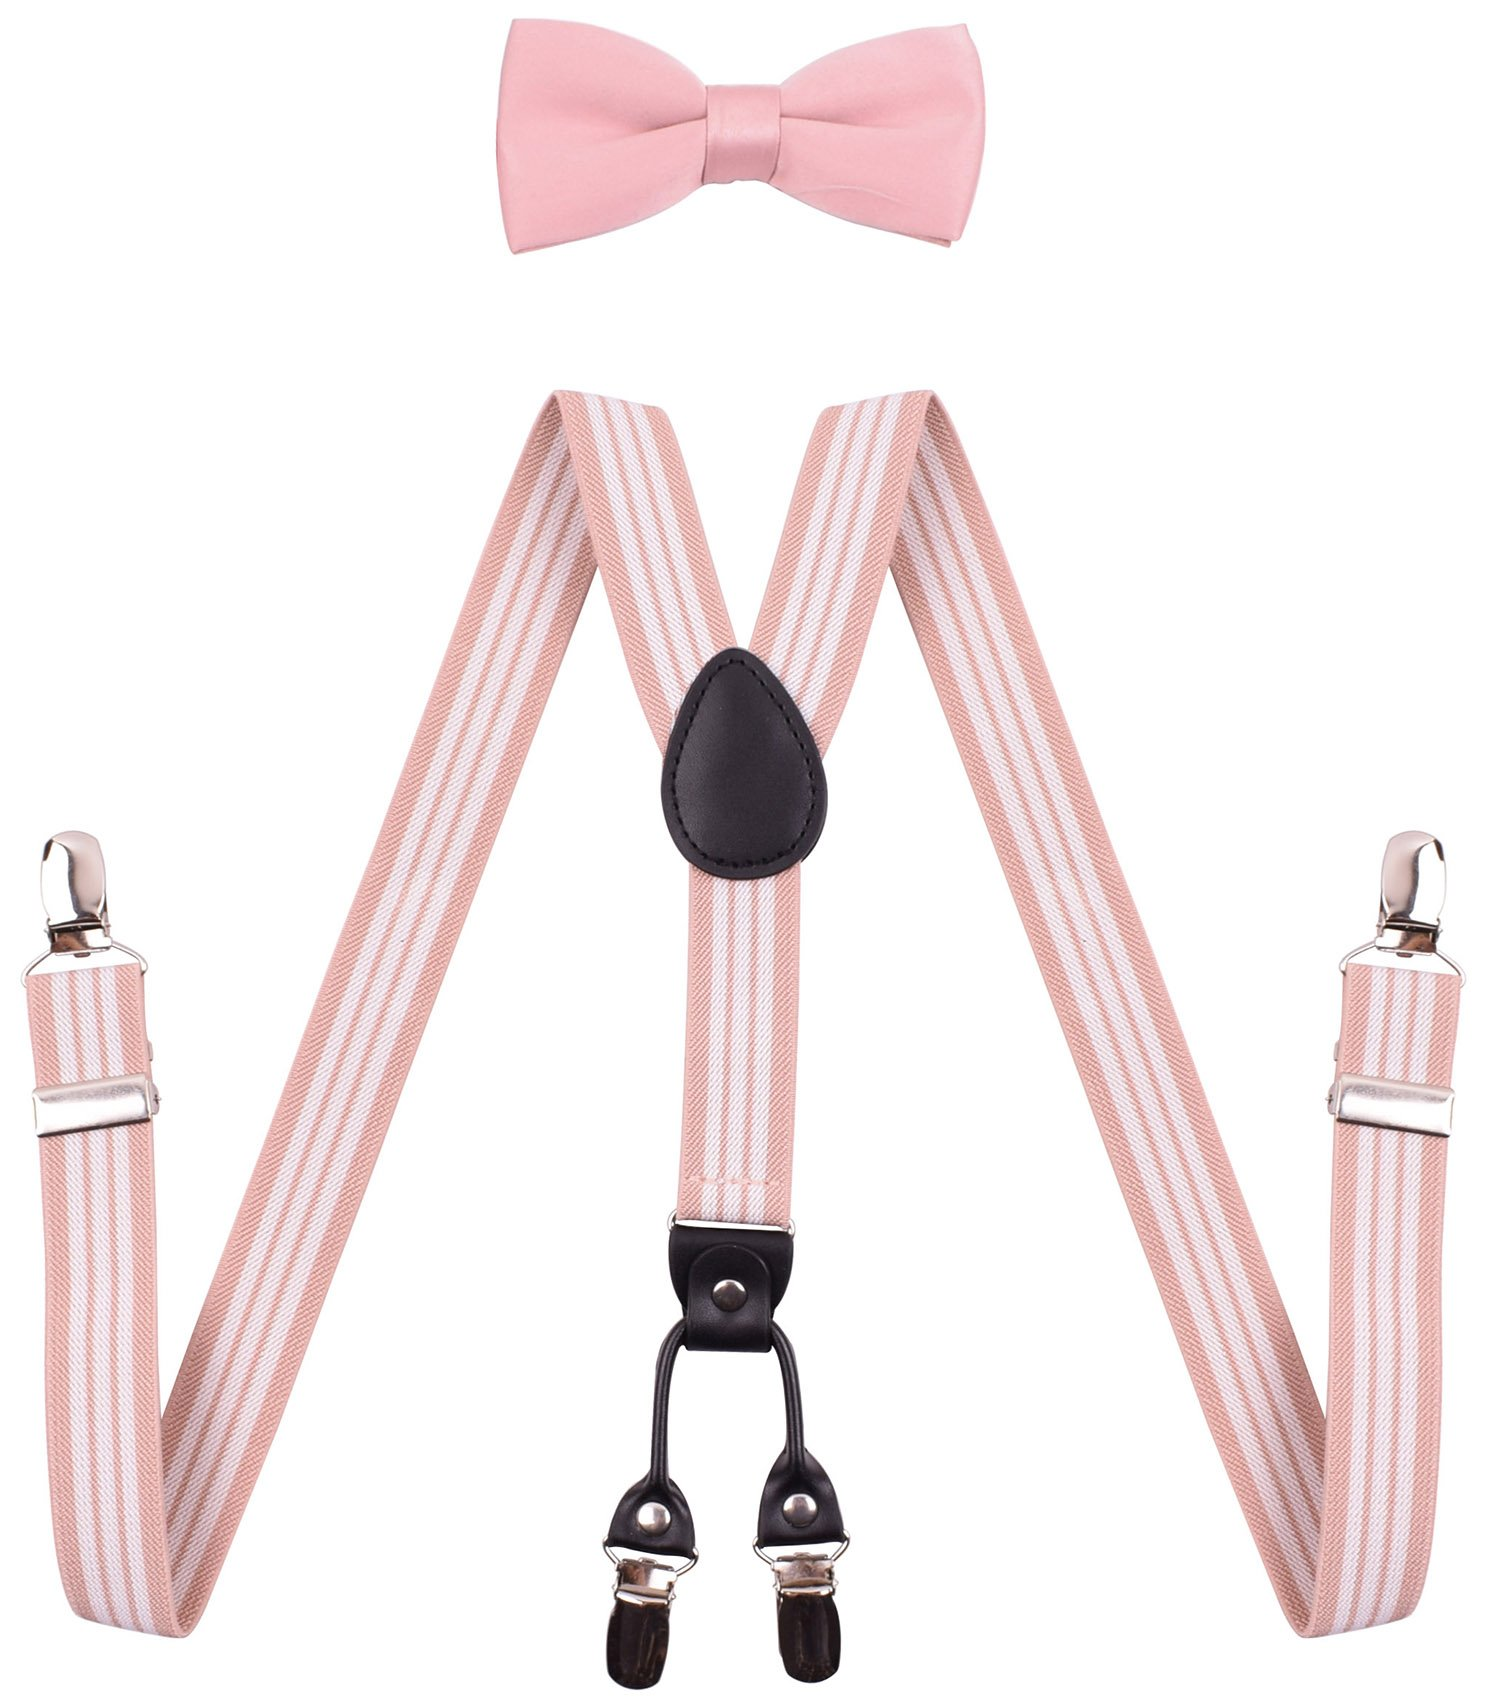 YJDS Toddler Suspenders Bowties for Kids Girls Boys Leather Braces Blush Stripe